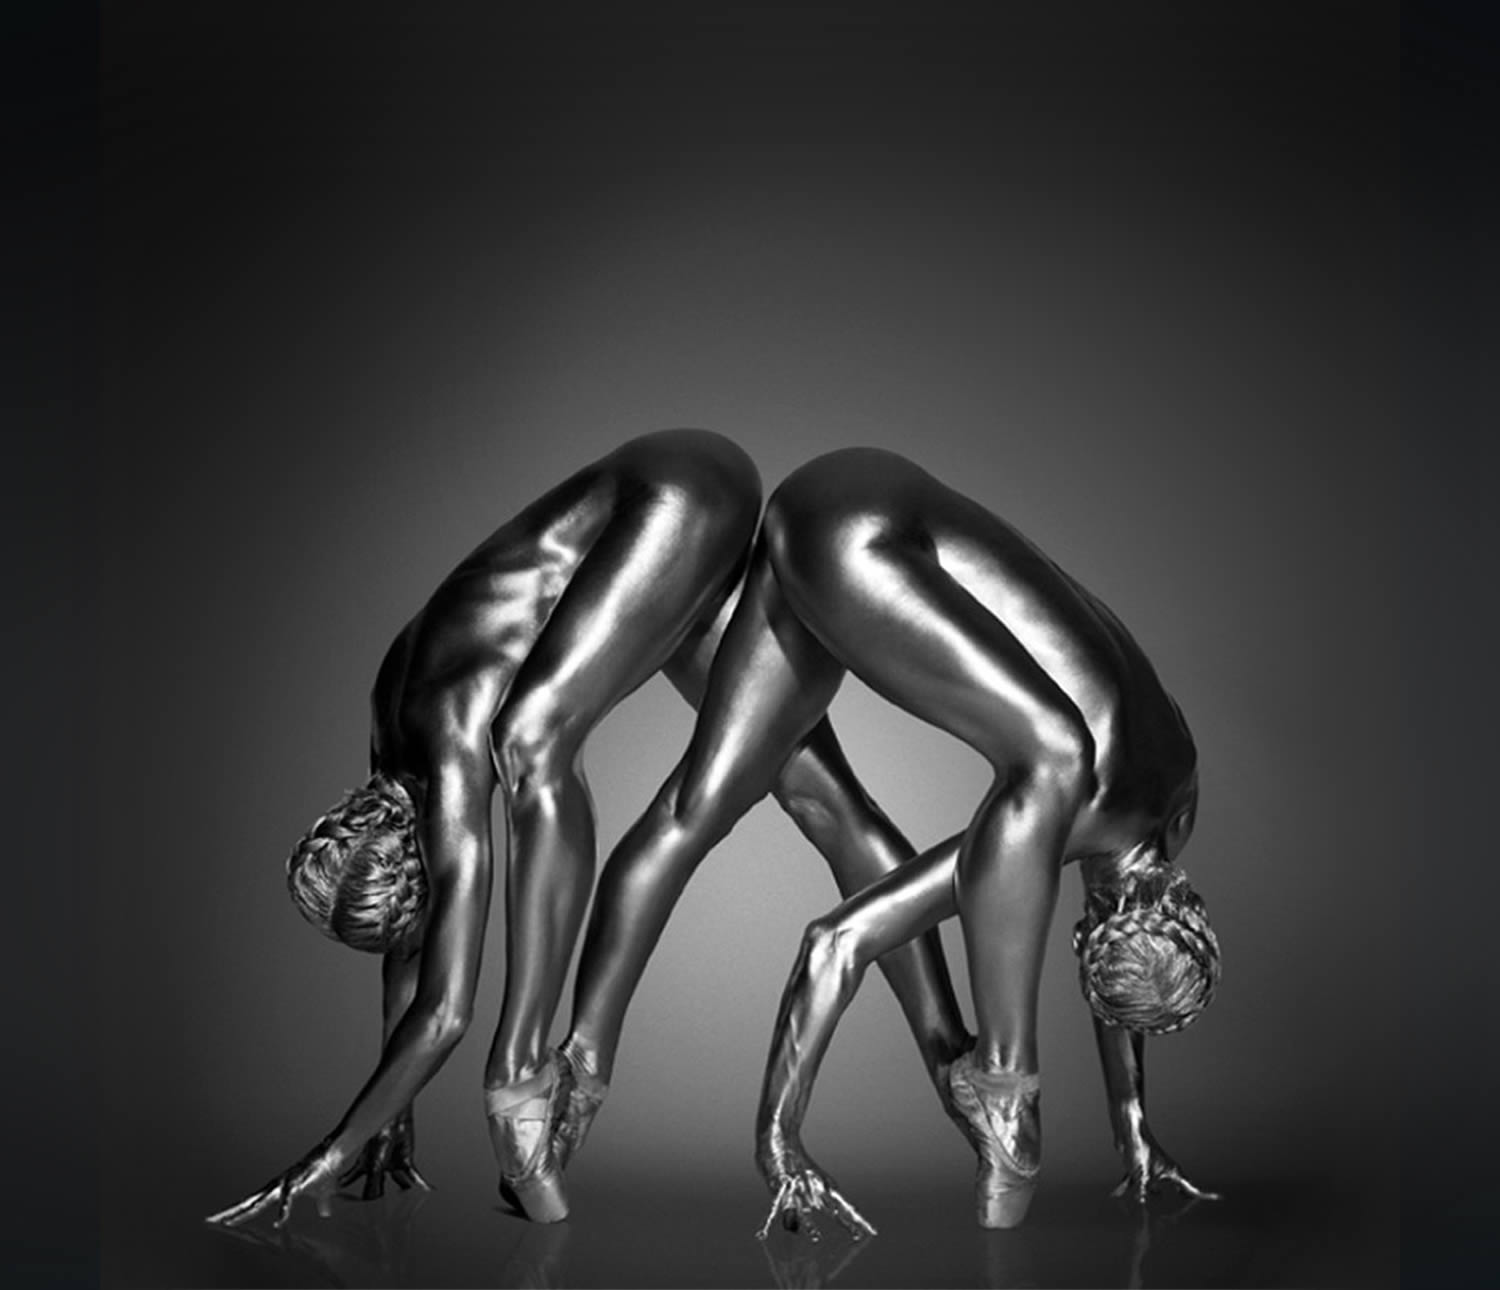 two silver models from argentum photo series, silver